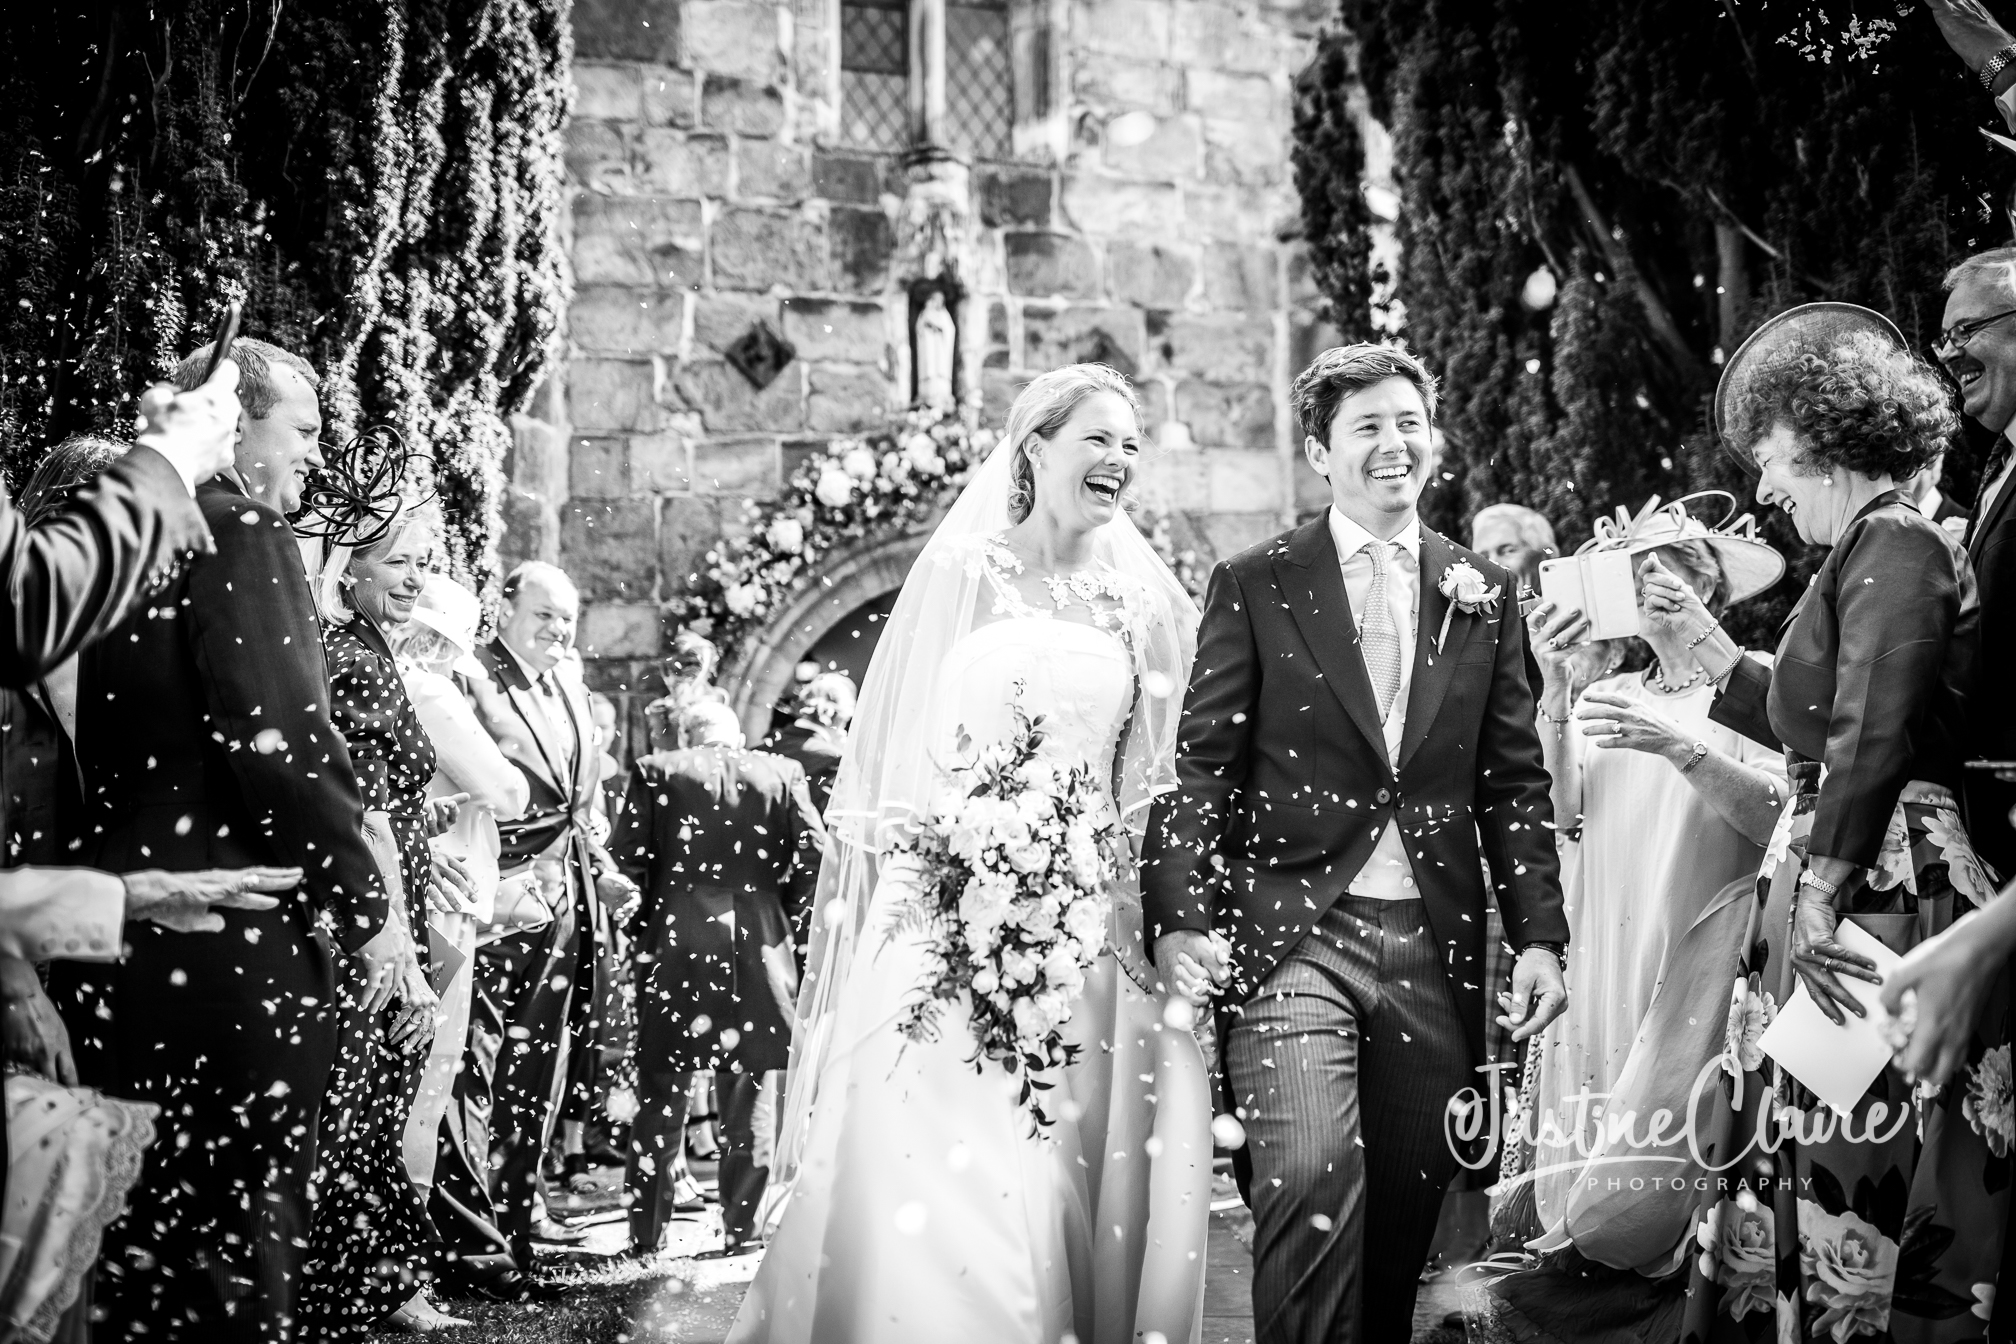 Wadhurst Marquee Wadhurst Castle wedding photographers The Bell Ticehurst VICKY JAMES-1.jpg